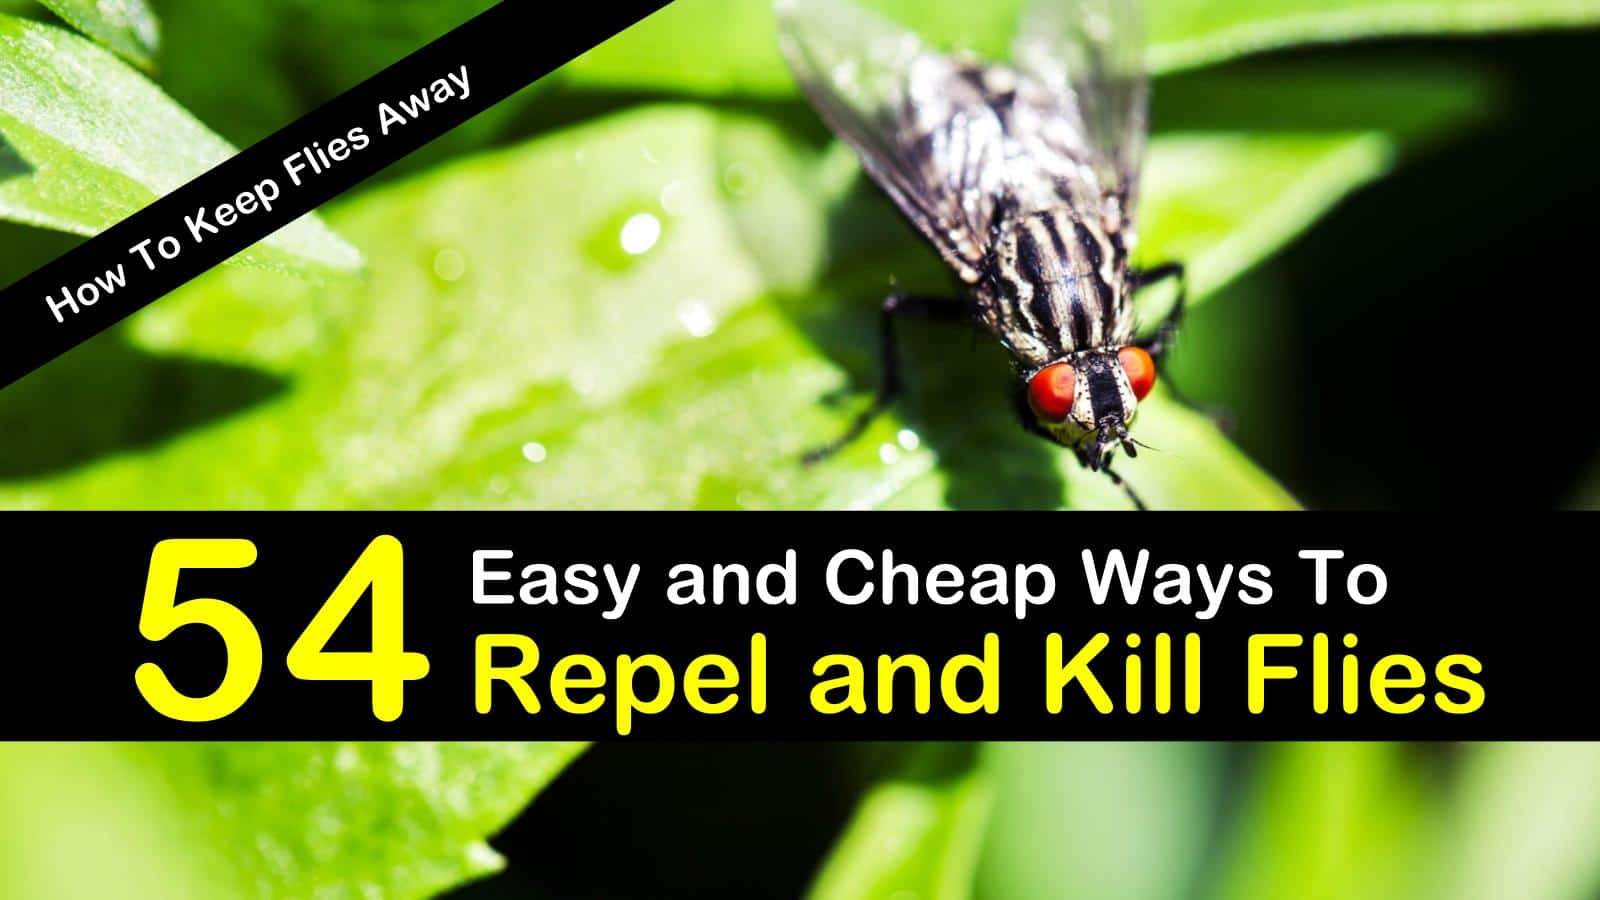 How To Keep Flies Away 54 Easy And Cheap Ways To Repel And Kill Flies